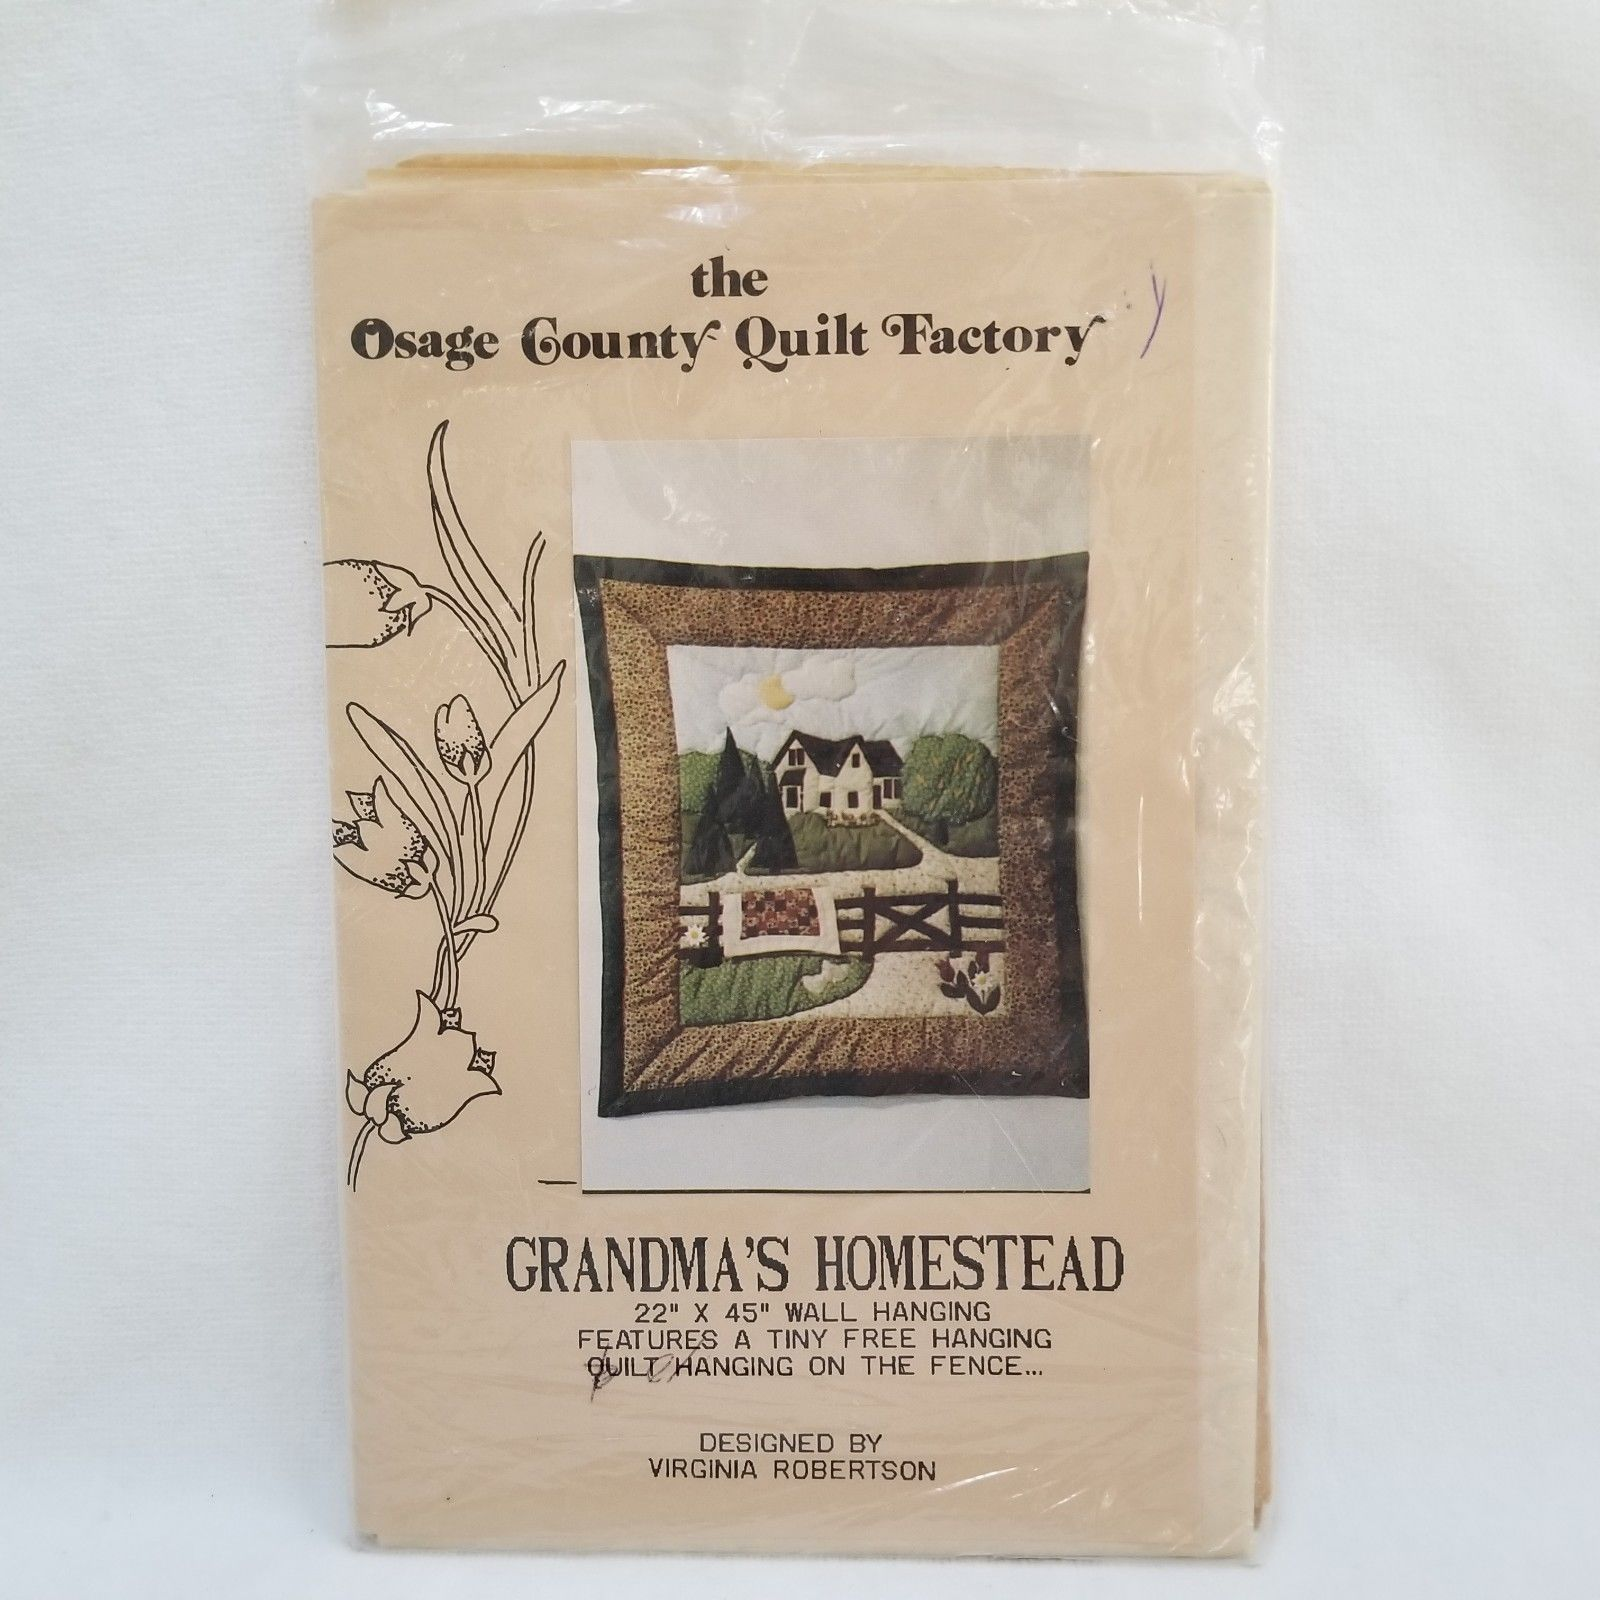 Primary image for Grandma's Homestead Quilt Pattern Osage Country Quilt Factory Virginia Robertson